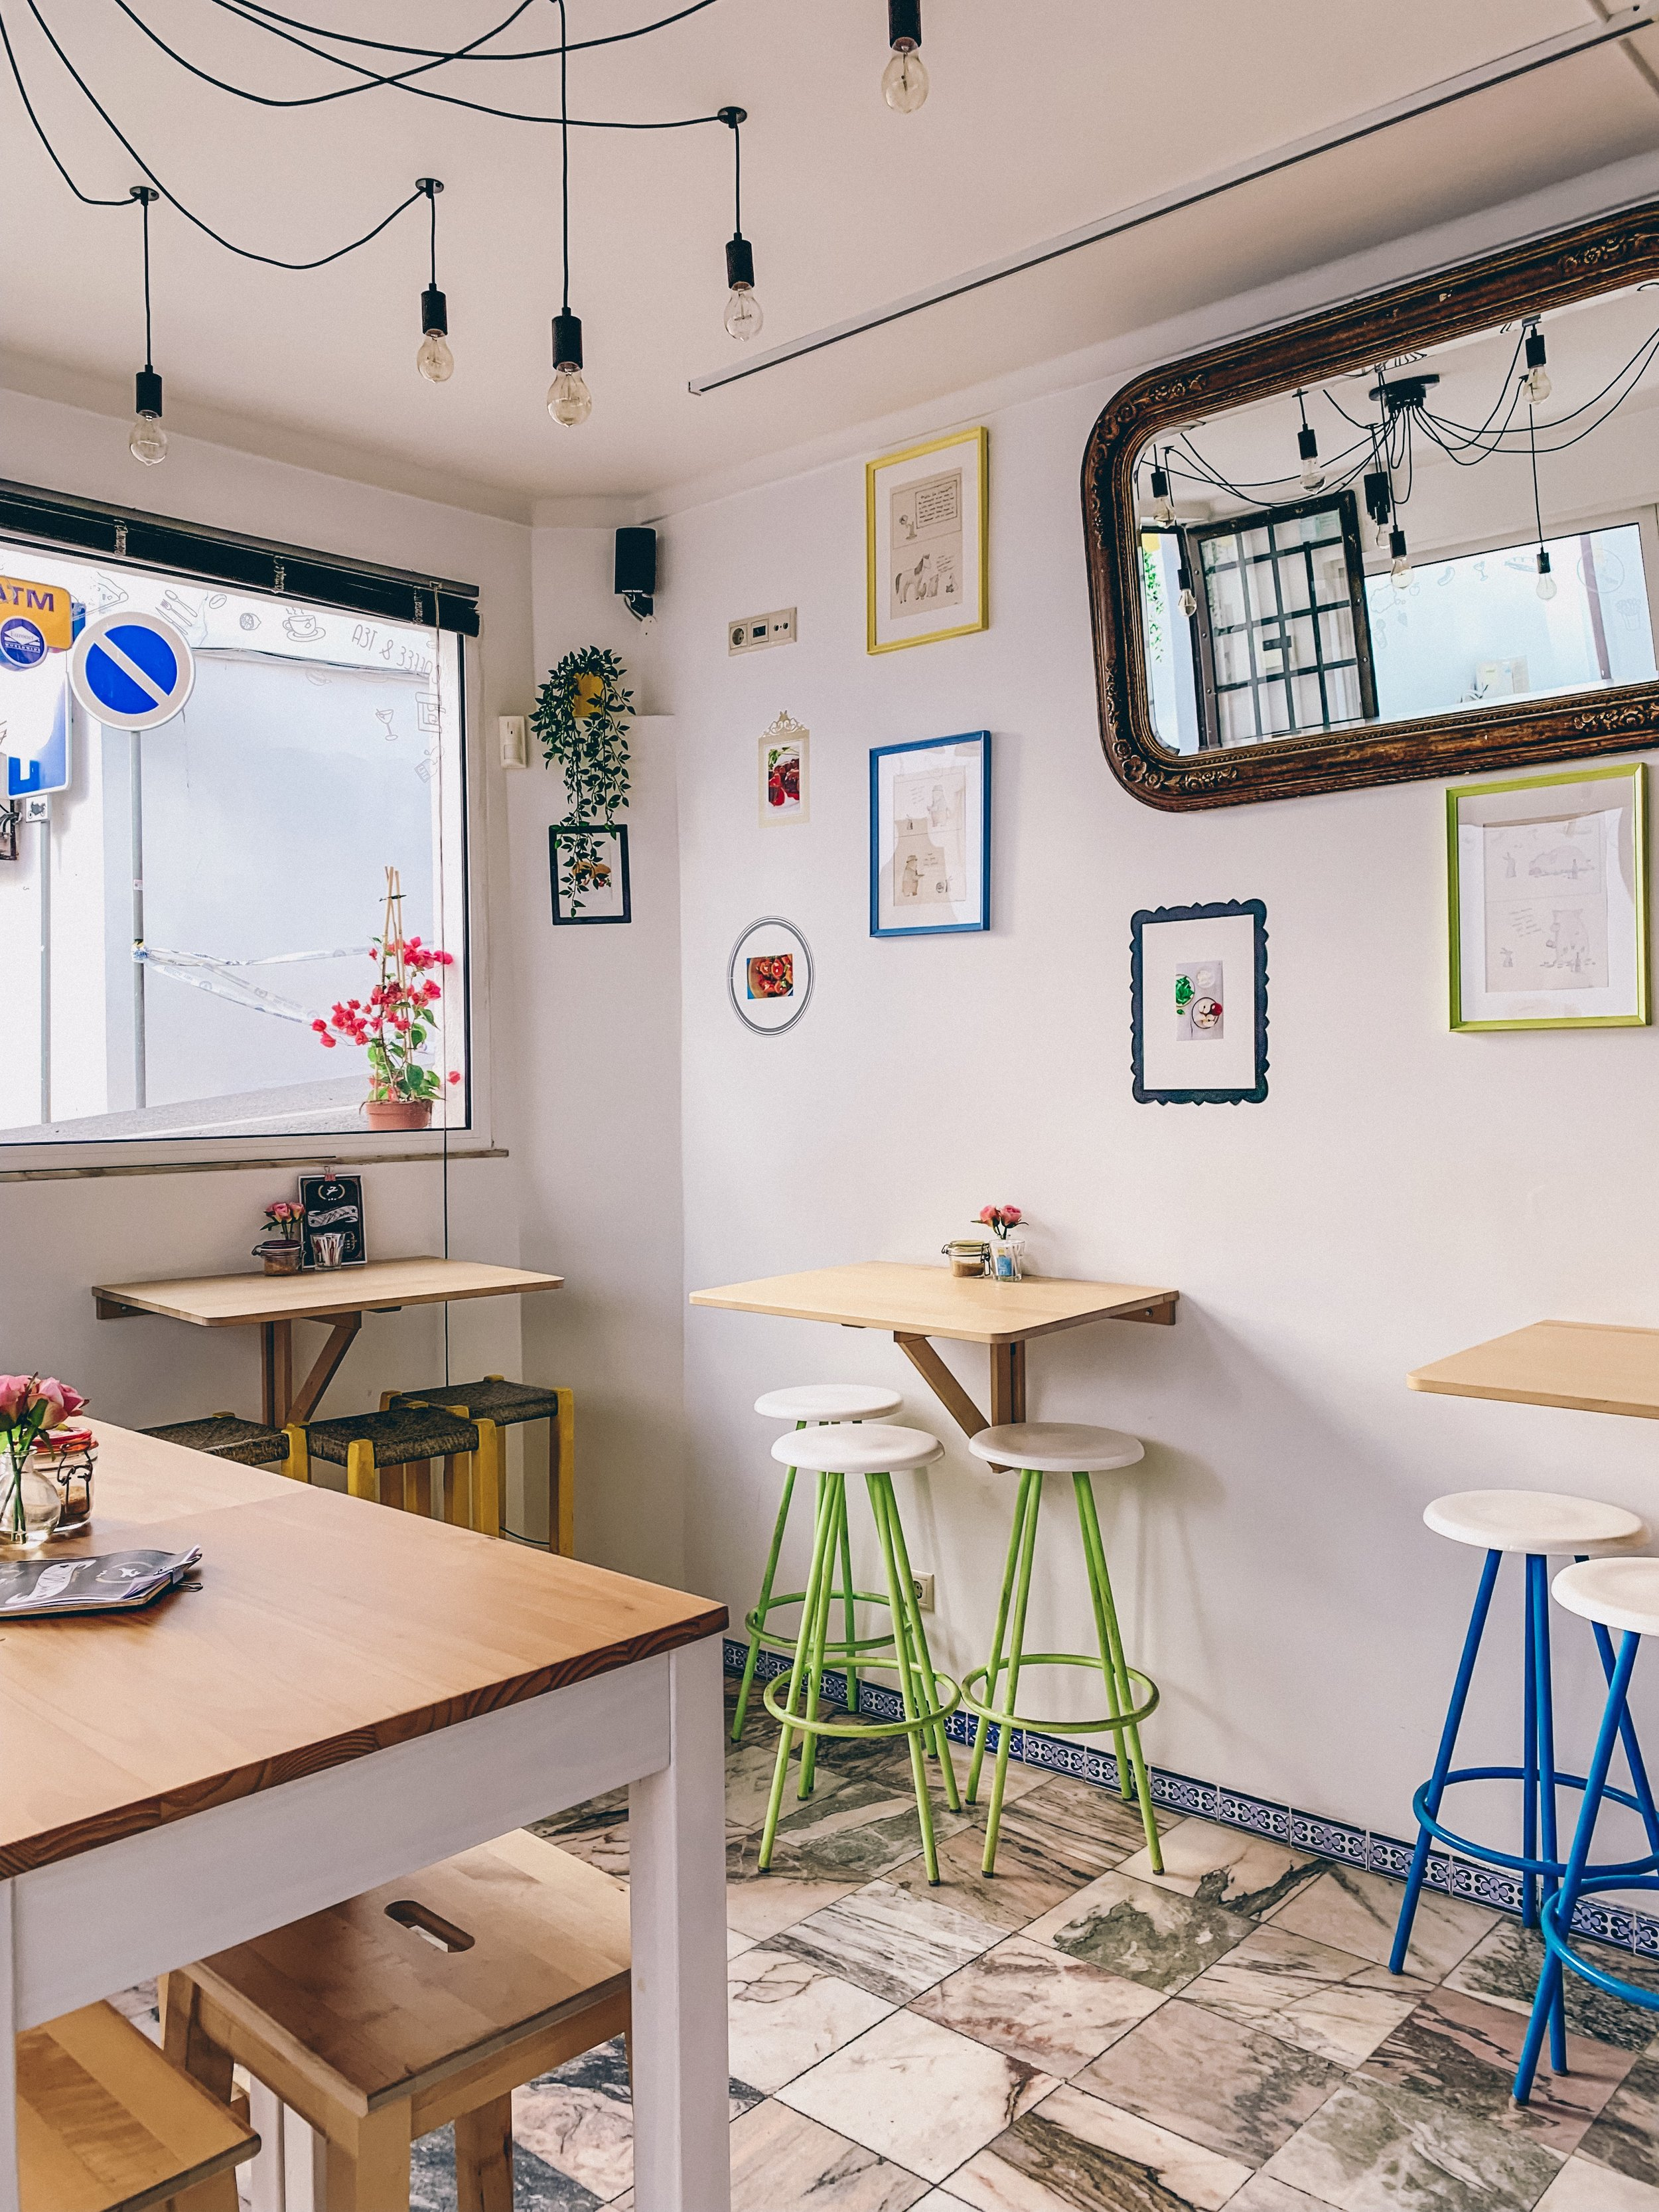 The cutest coffee shop in Albufeira